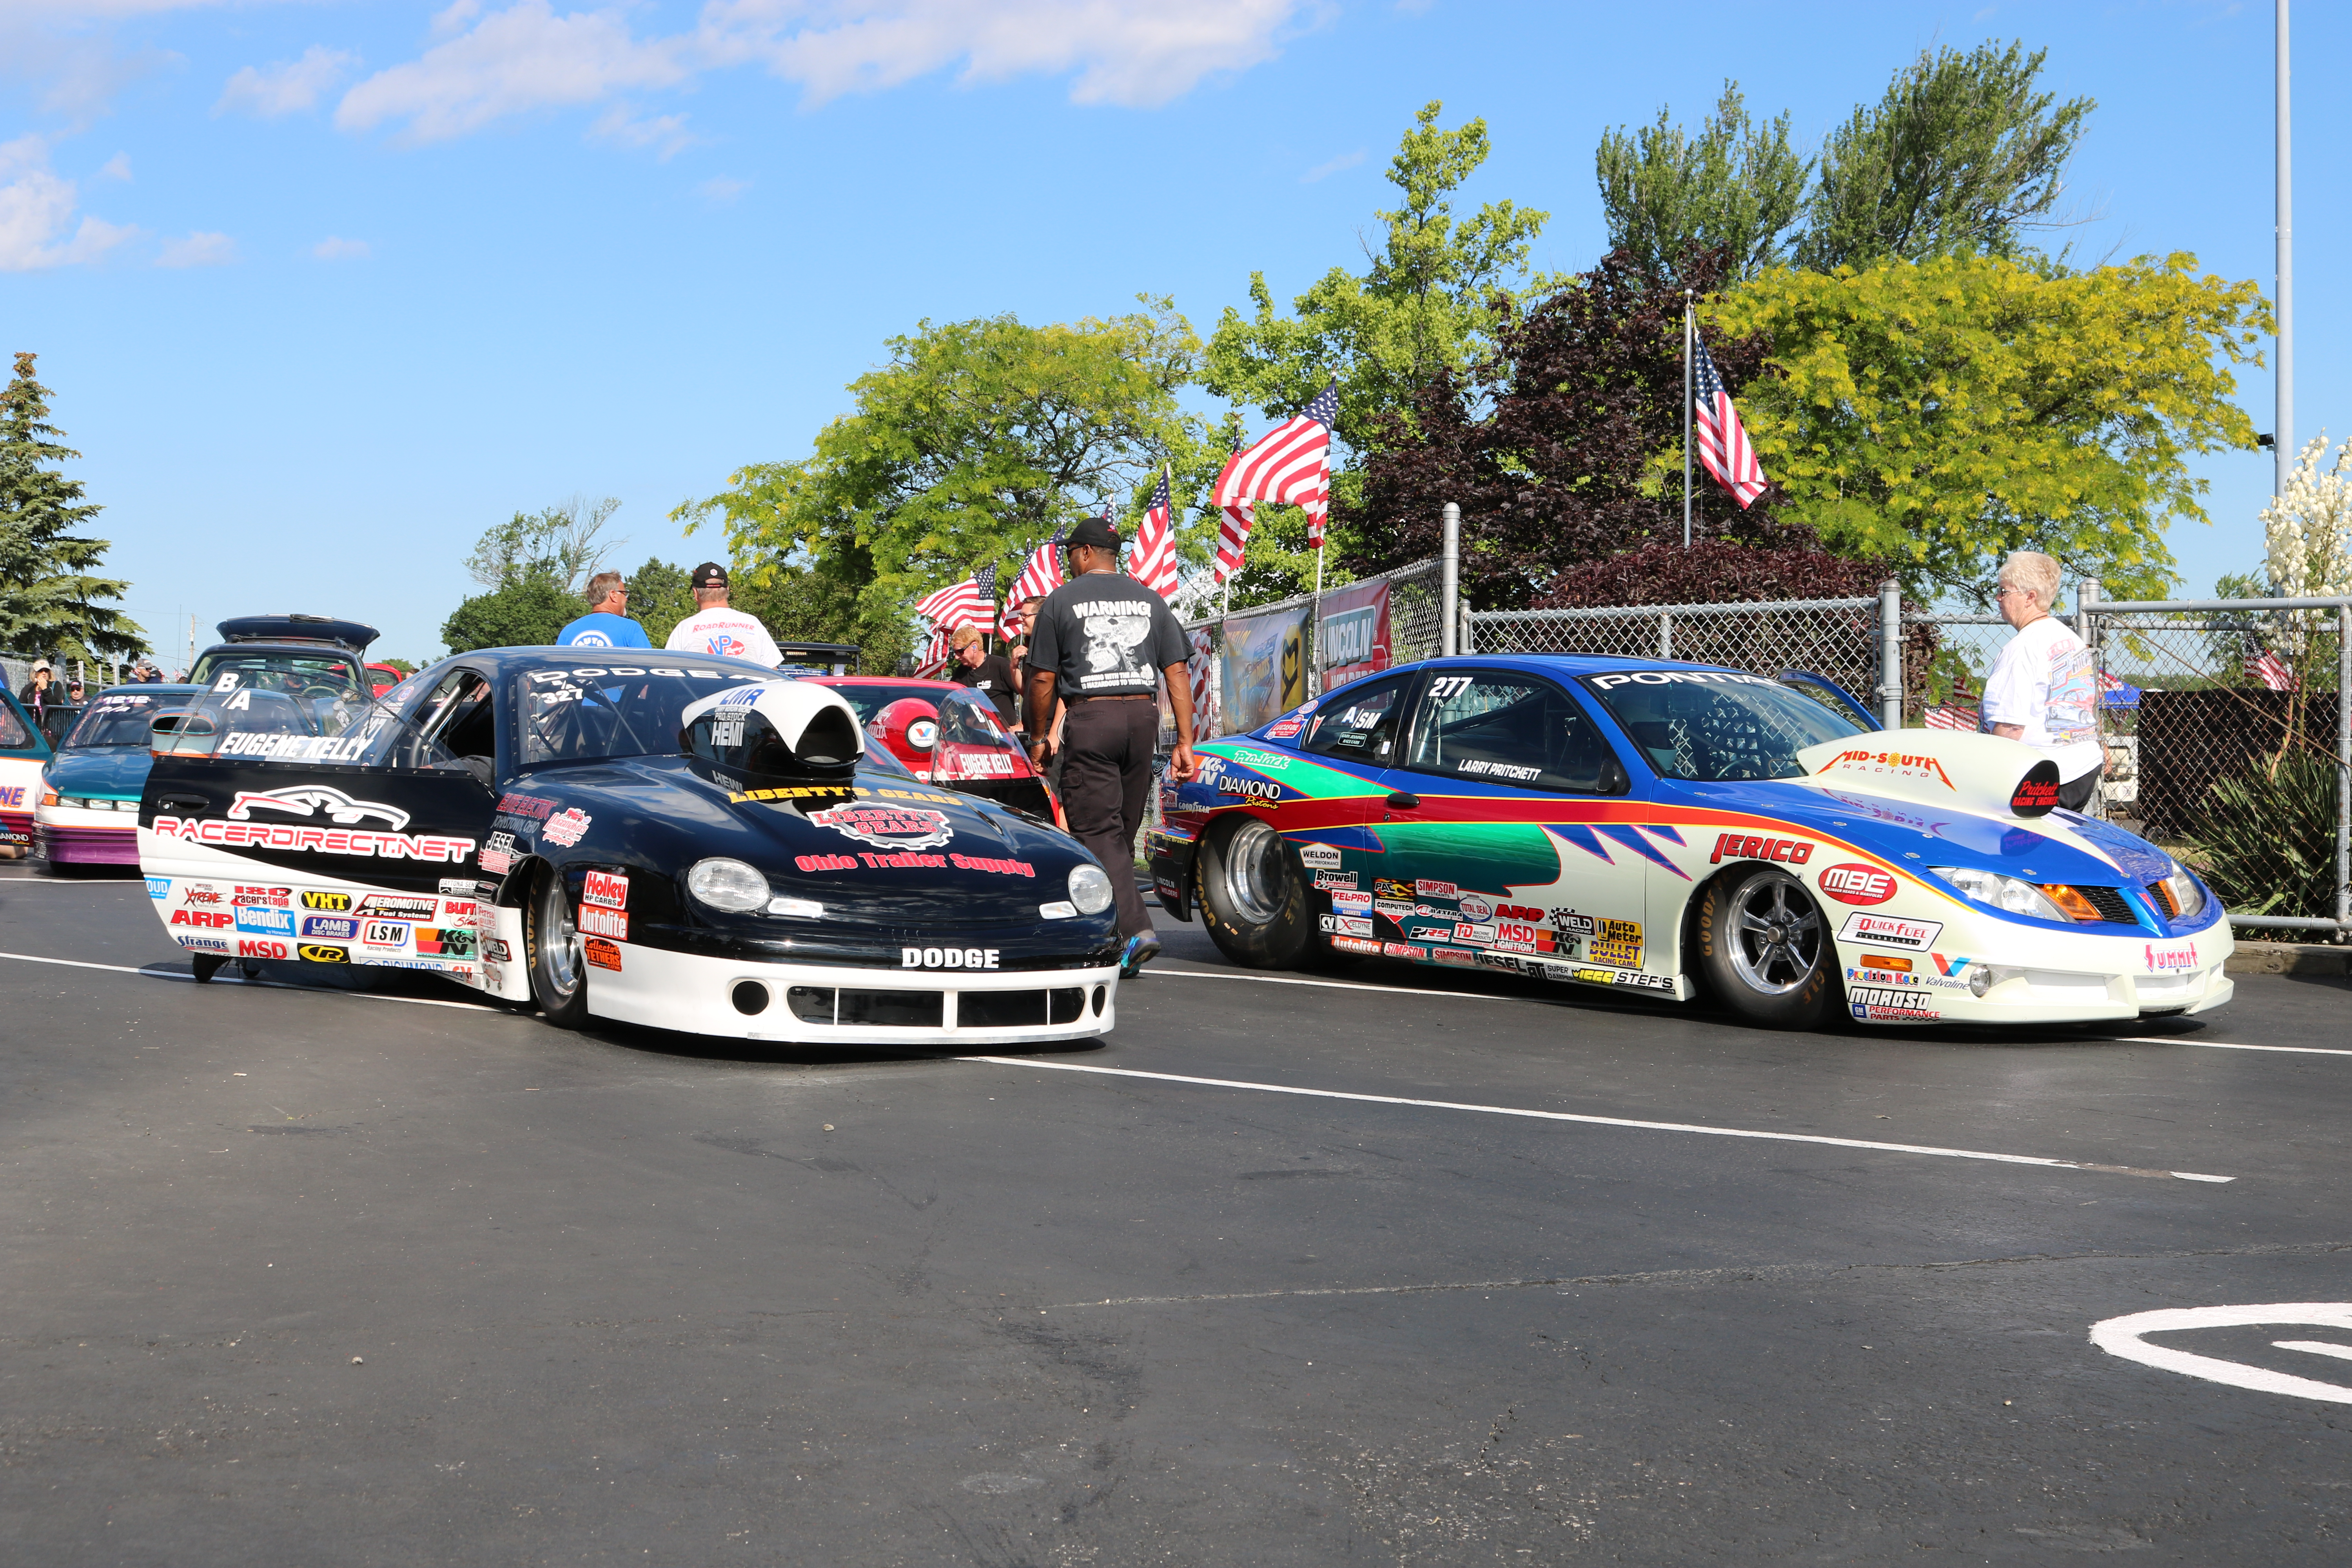 Longtime Pro Stock Driver Larry Morgan Near Lane Driving Eugene Kelly S B A Dodge Neon And Pritchett In His Sm Pontiac Sunfire Were Among The